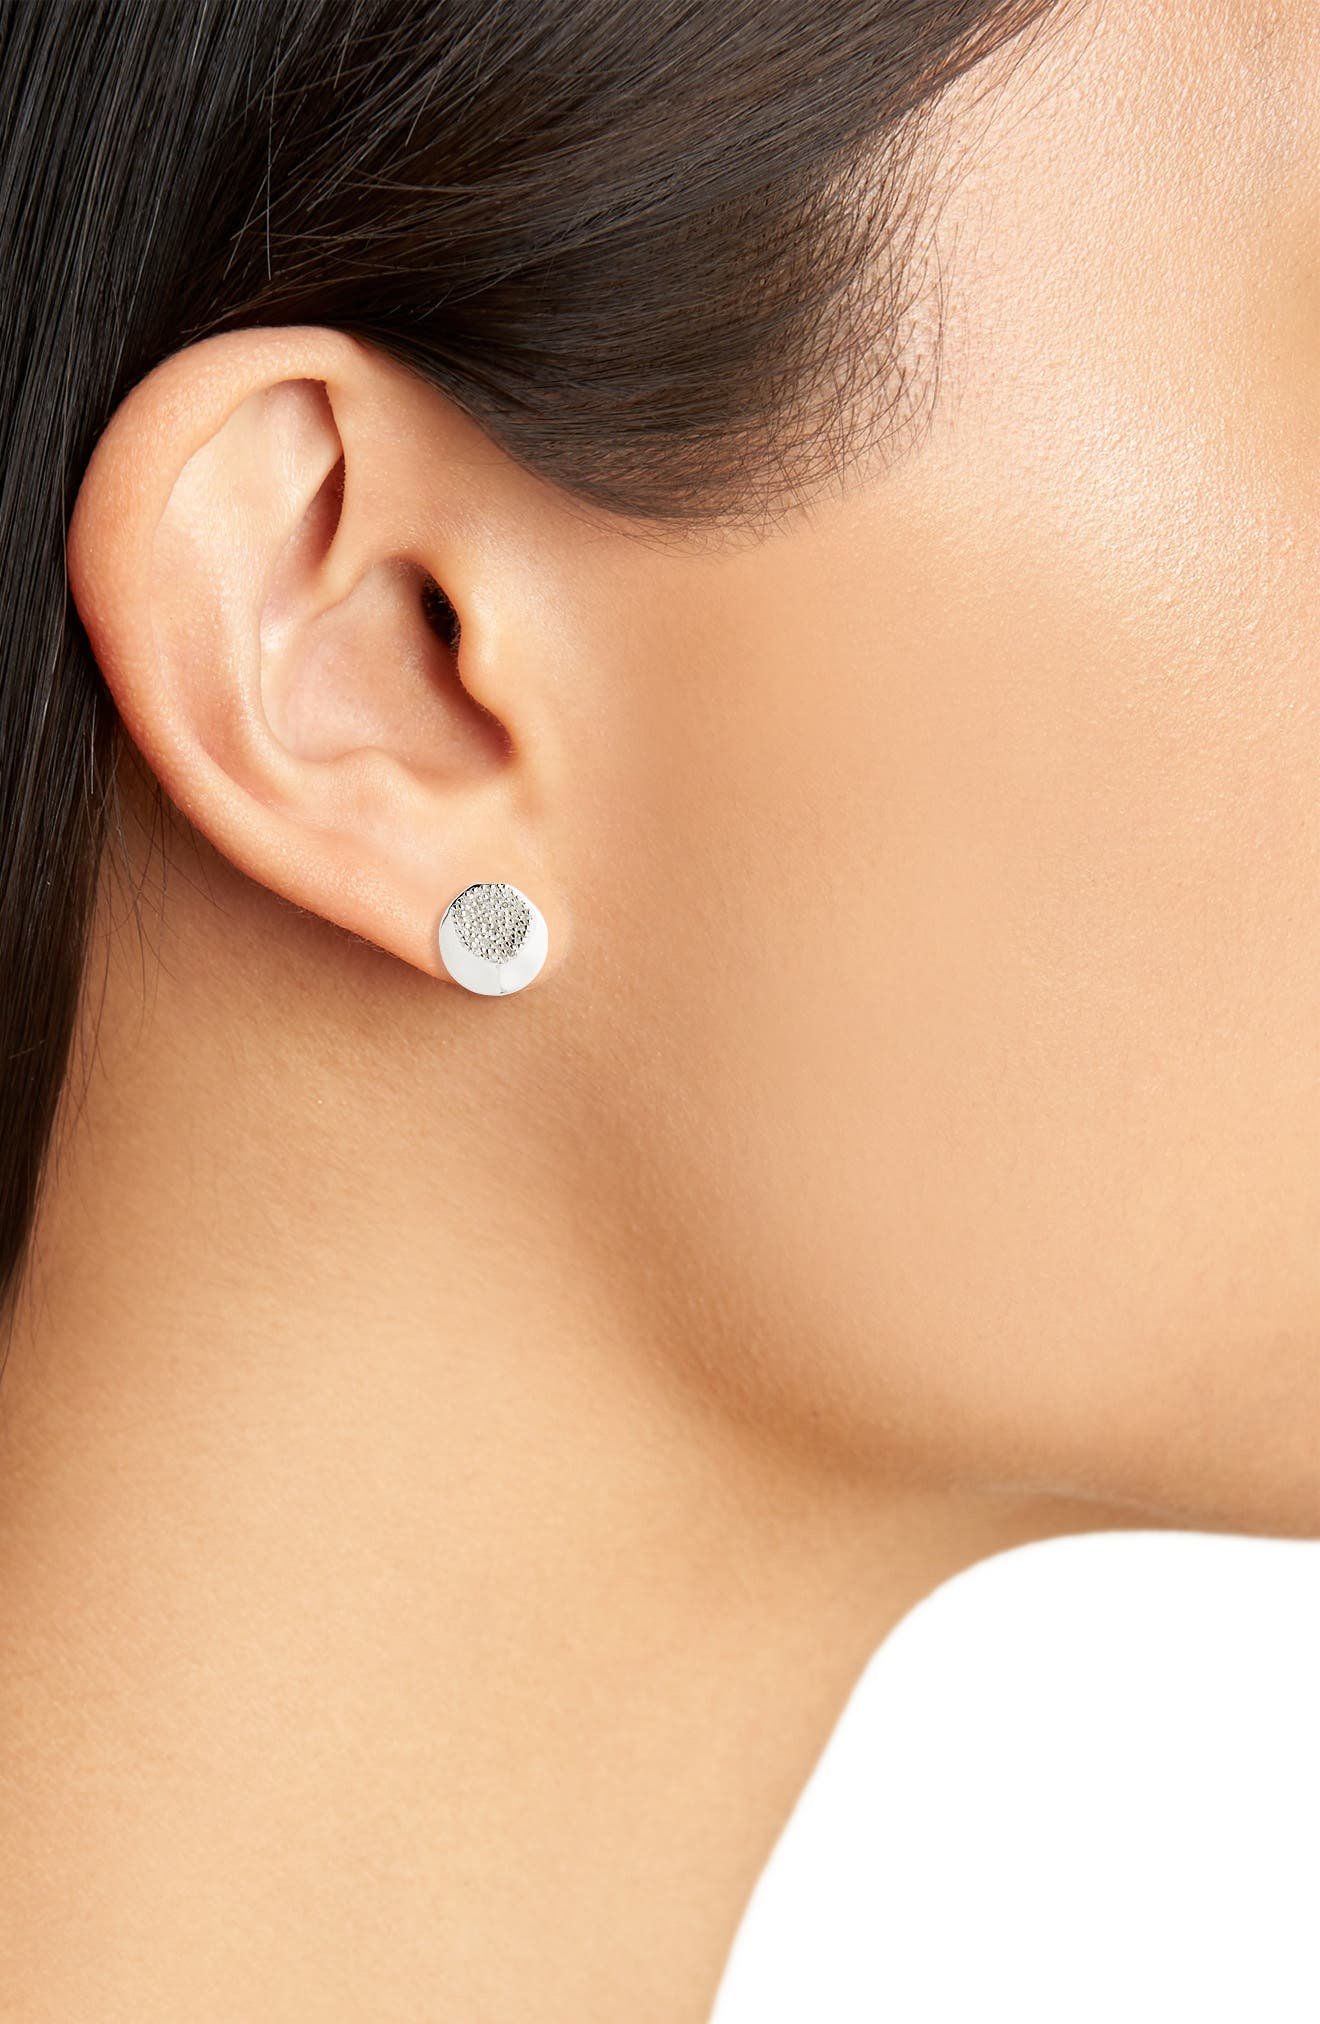 Onda Pavé Diamond Stud Earrings,                             Alternate thumbnail 2, color,                             SILVER